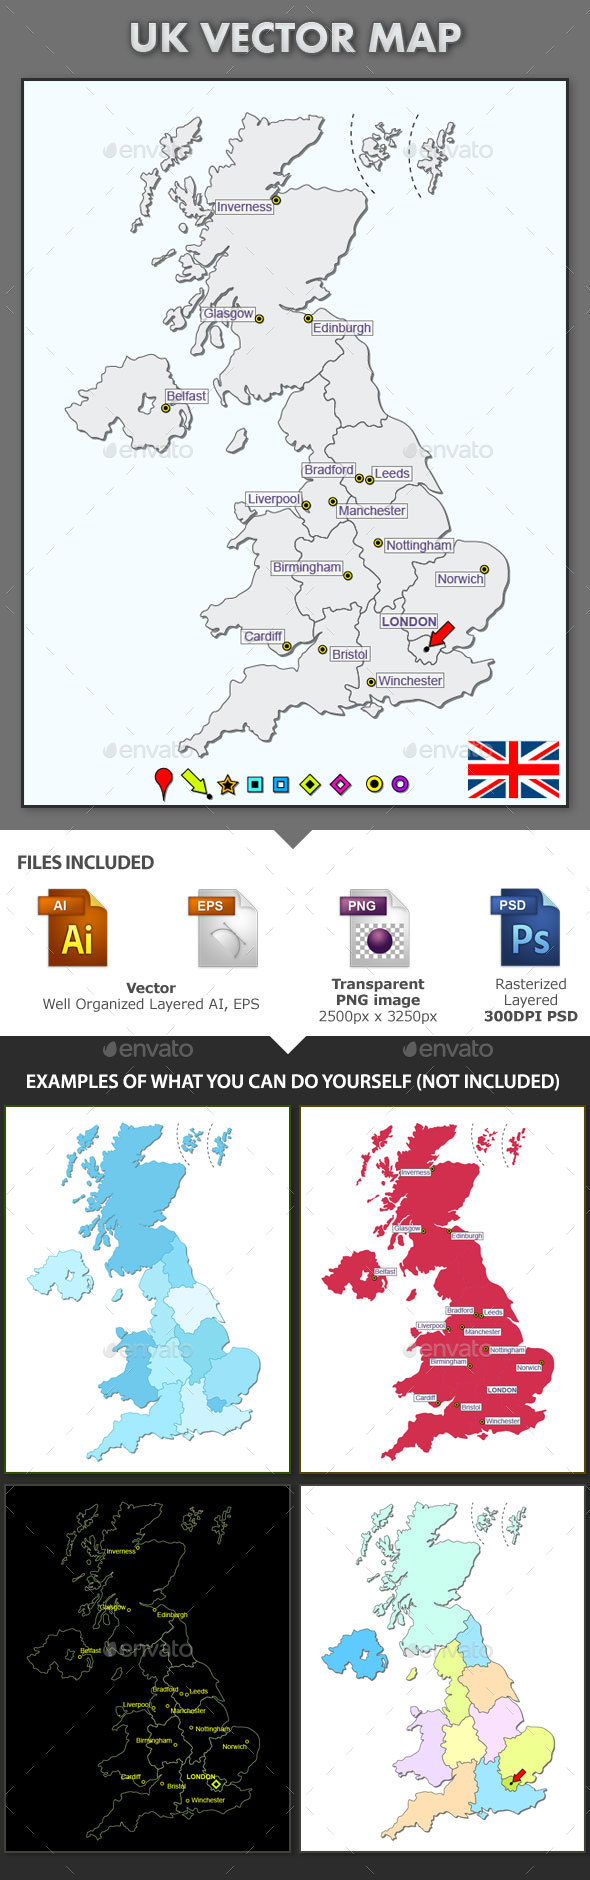 UK Layered Vector Map - Miscellaneous Vectors